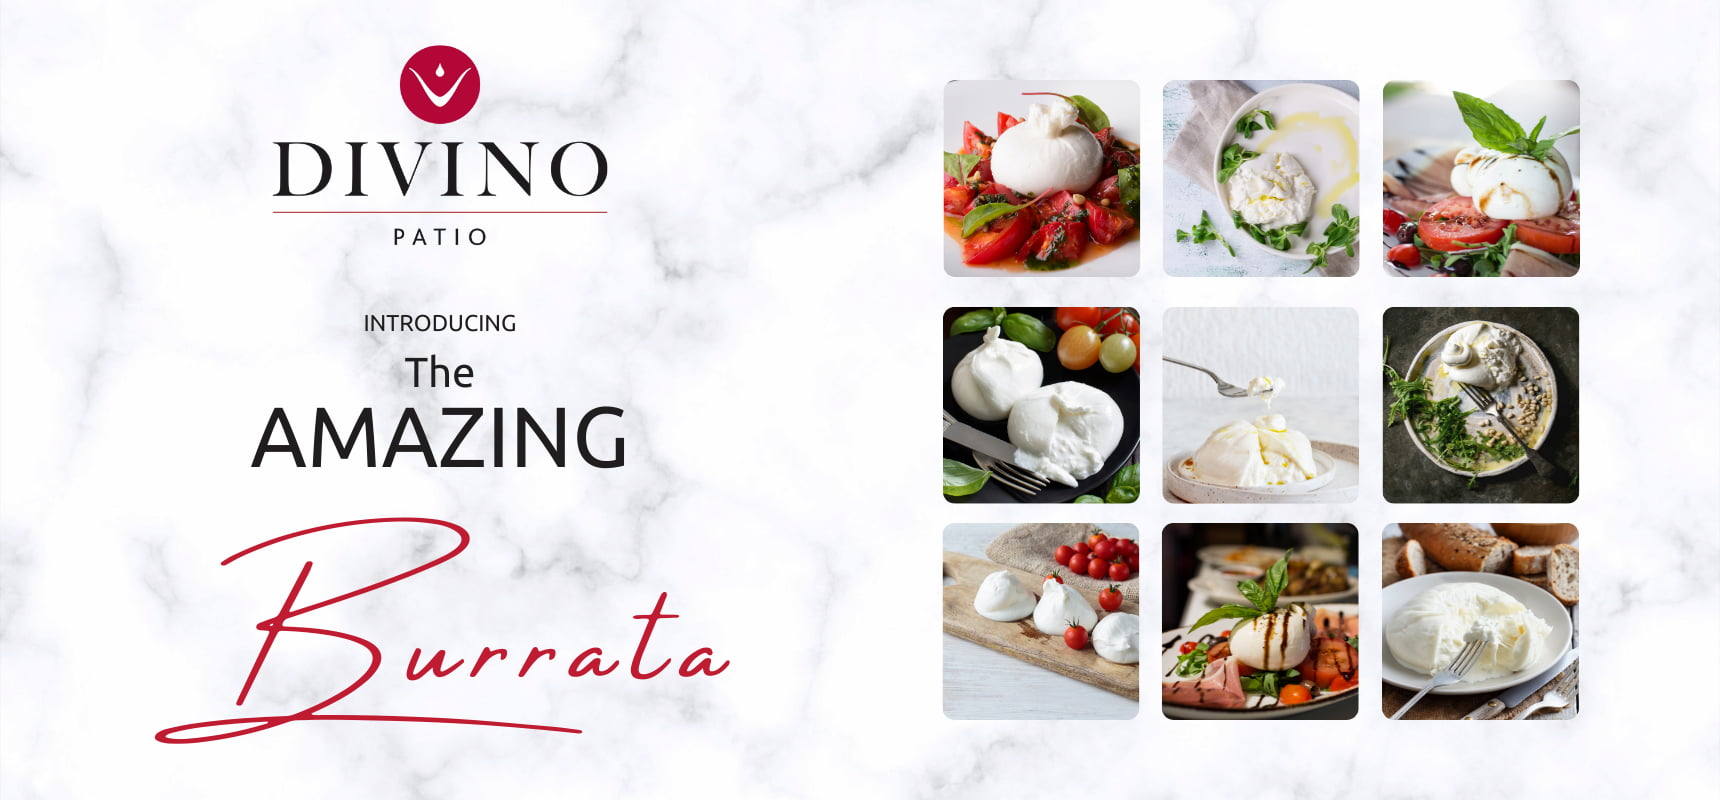 Burrata Cheese and why is so good